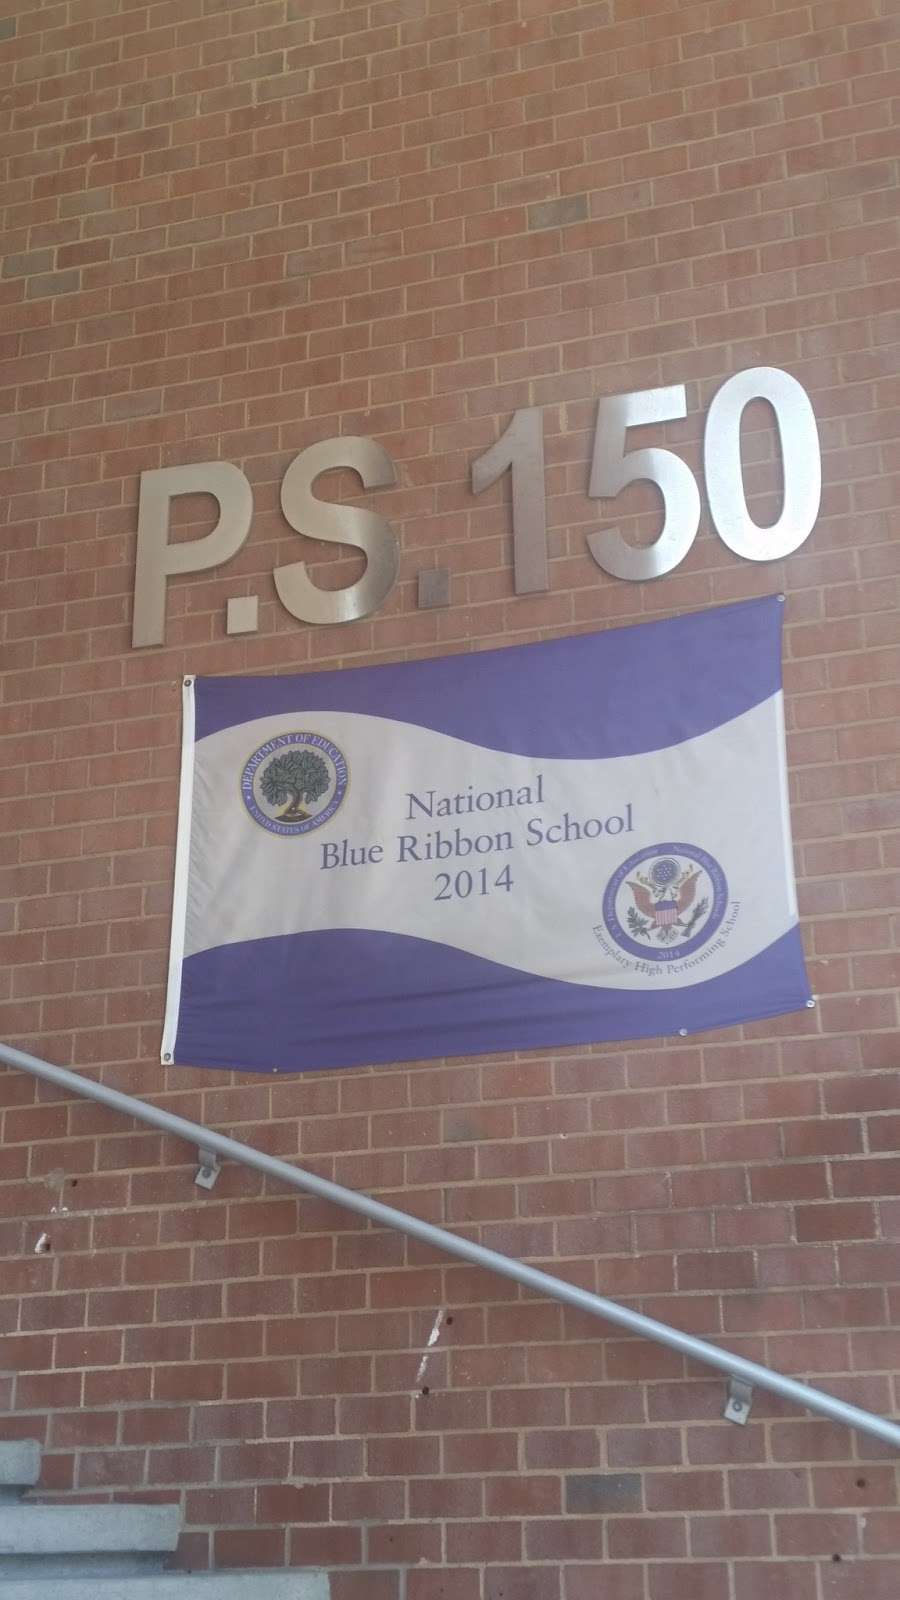 PS 150 Tribeca Learning Center - school  | Photo 1 of 1 | Address: 334 Greenwich St, New York, NY 10013, USA | Phone: (212) 732-4392